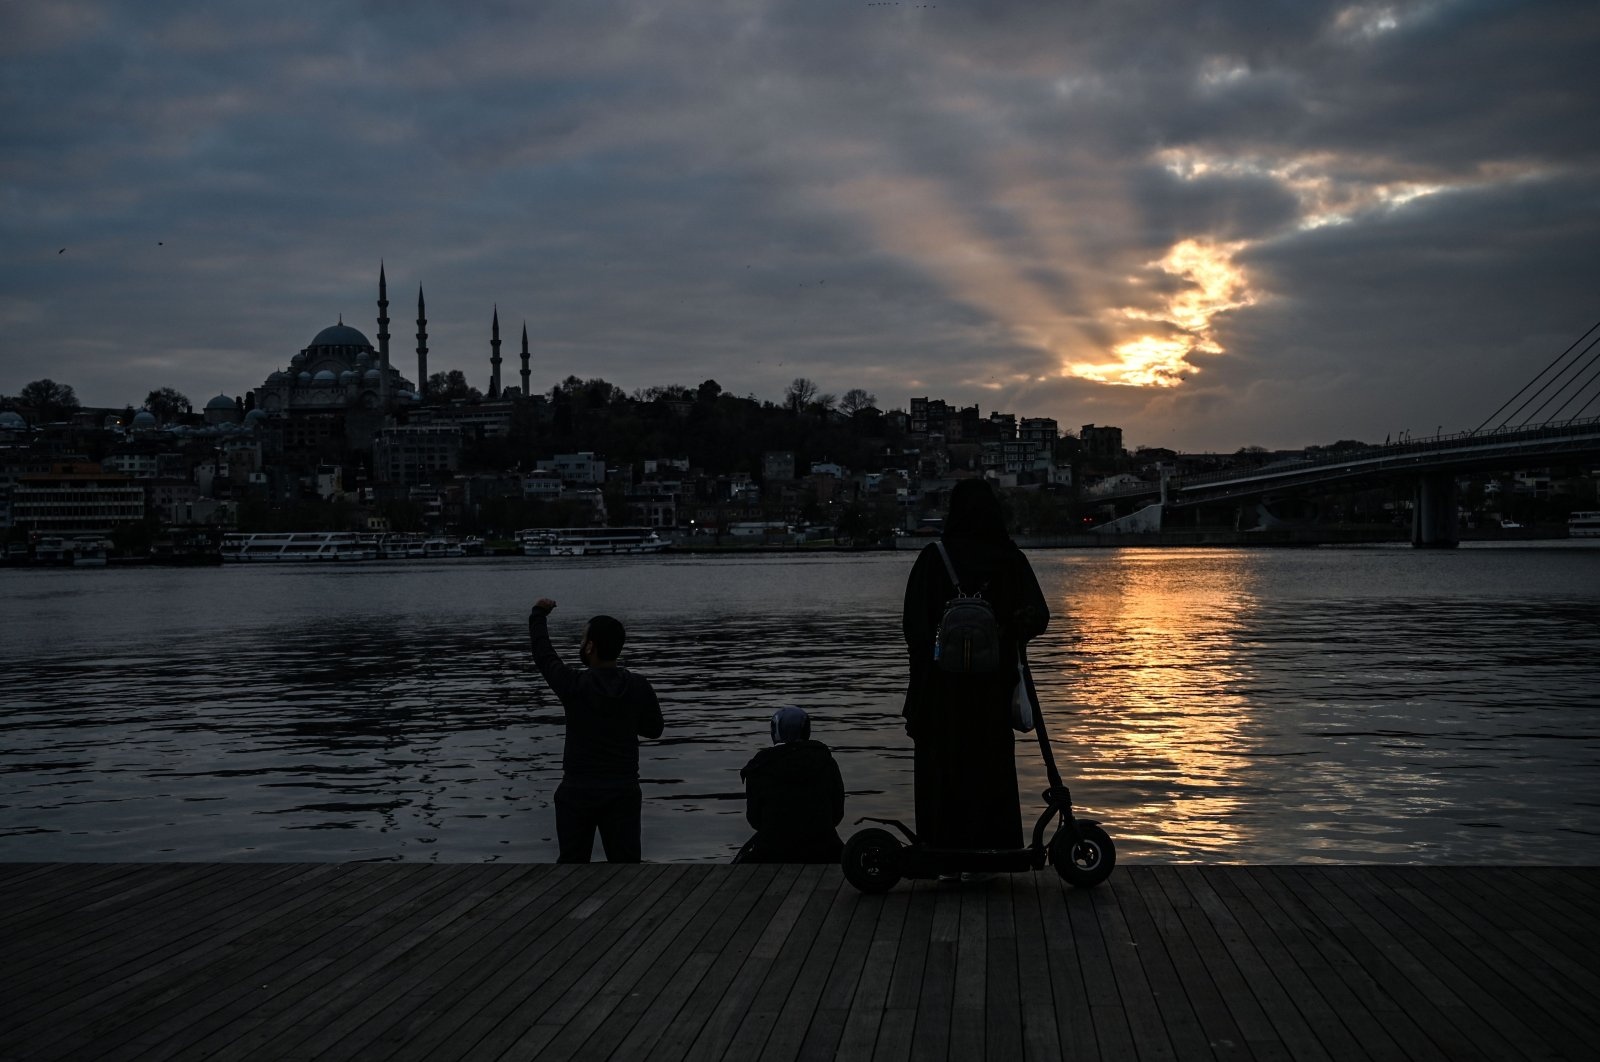 People look at the sunset from the deserted shore of the Golden Horn near the Karakoy district, in Istanbul during a week-end curfew, aimed at curbing the spread of the COVID-19 pandemic caused by the novel coronavirus, on Dec. 19, 2020. (AFP Photo)